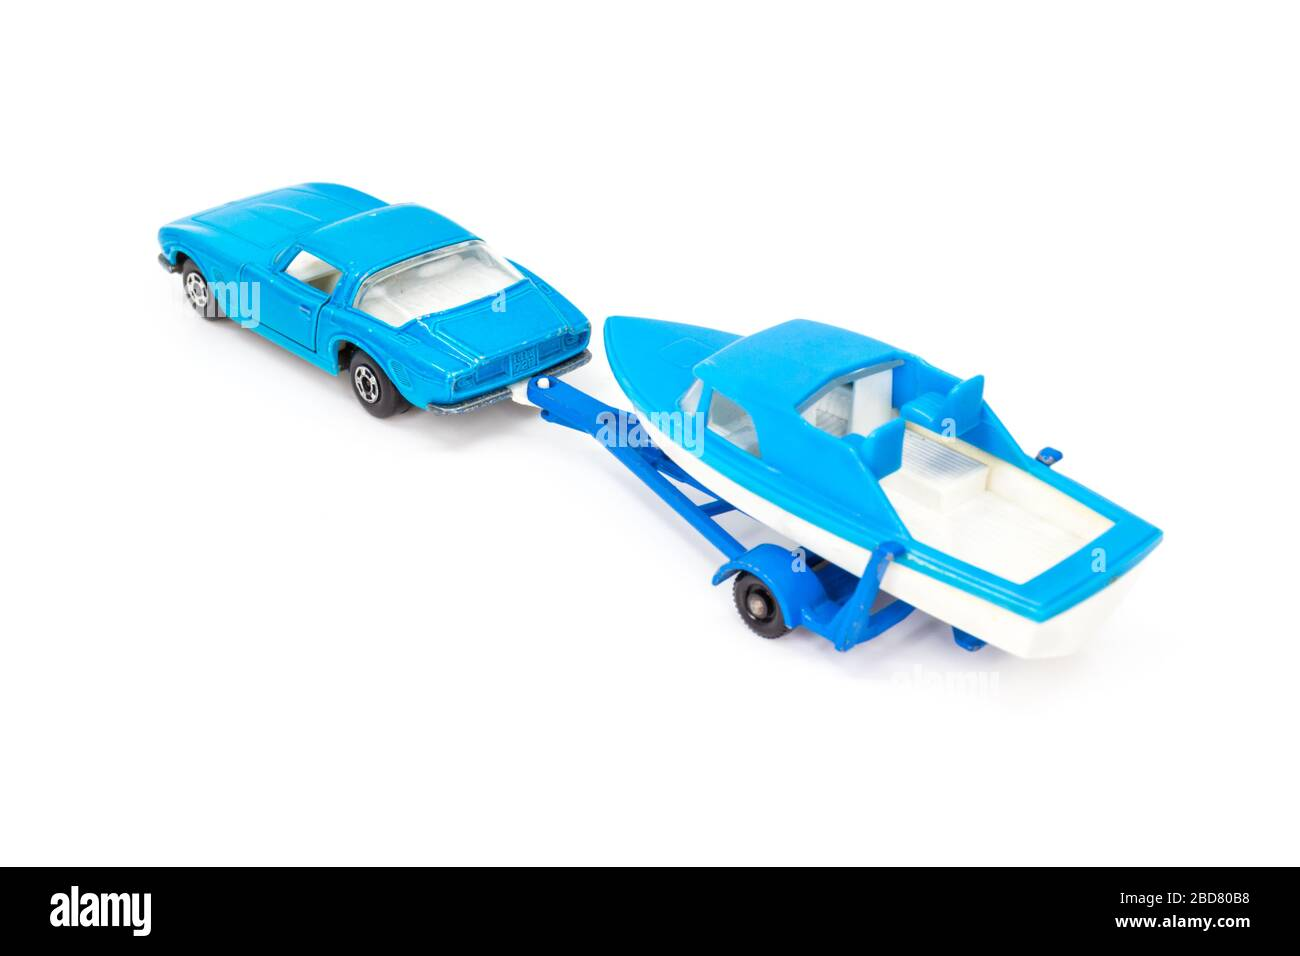 Lesney Products Matchbox model toy car 1-75 series no. Stock Photo